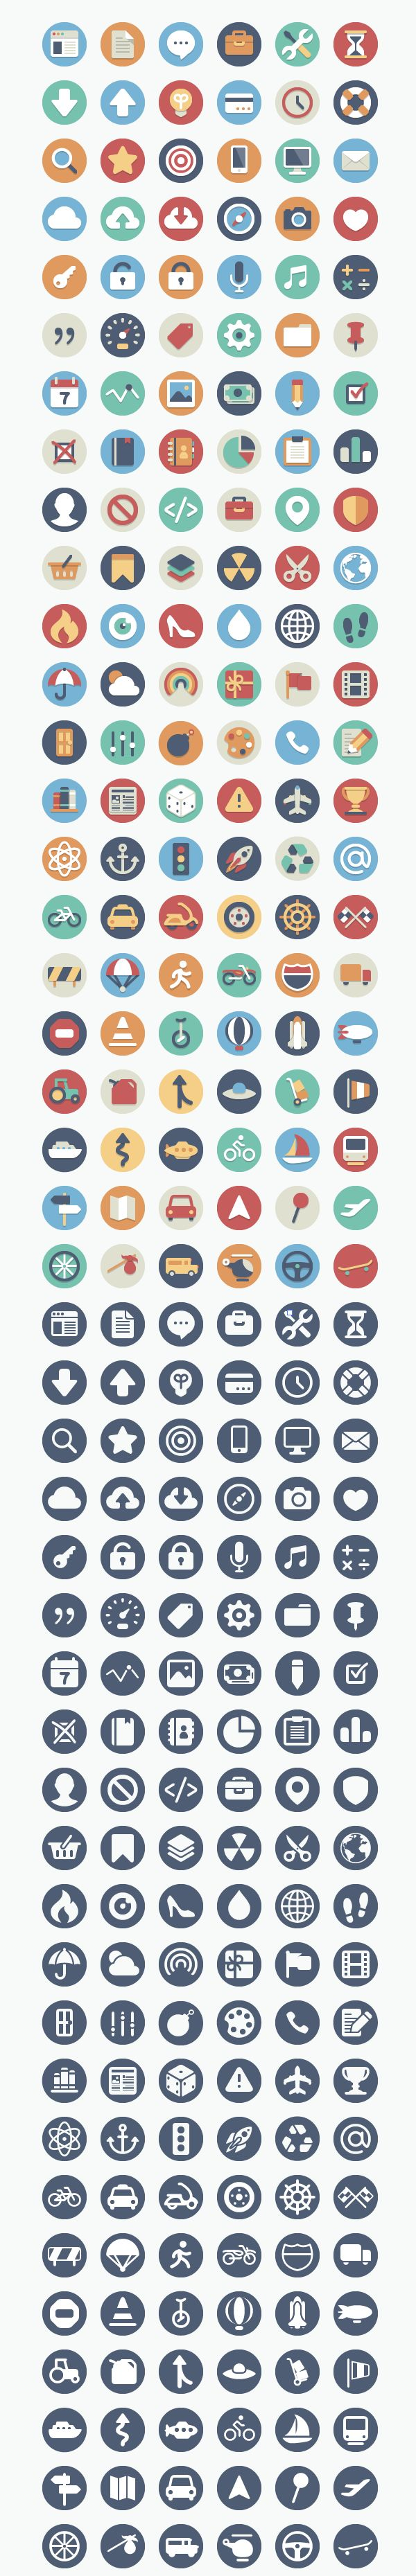 flat icons by elegant themes